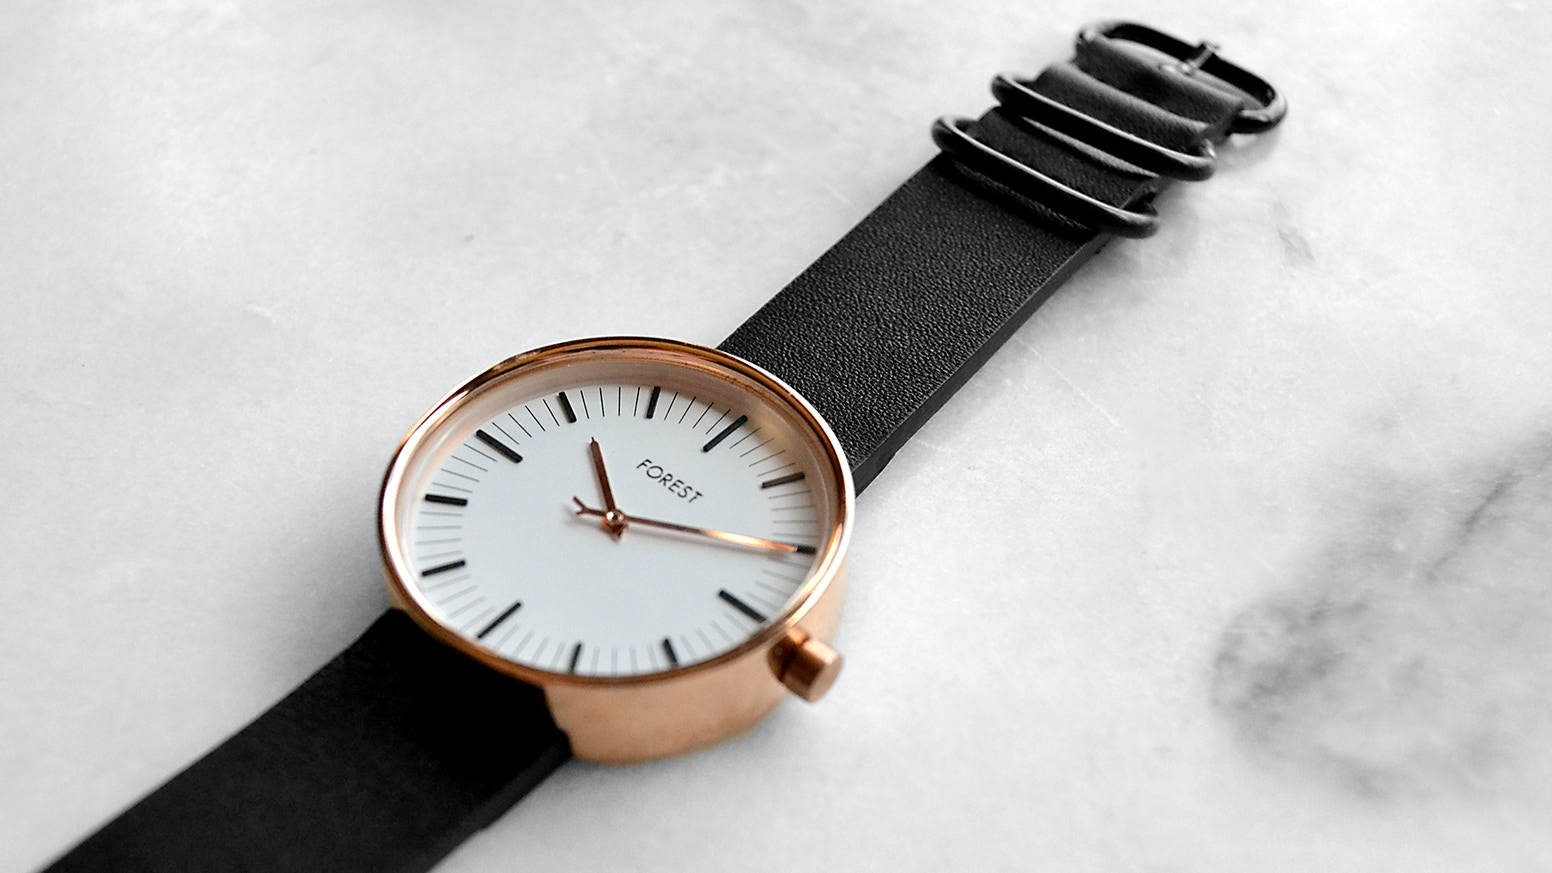 a fine time simplicity simplistic design updated for watches minimalist milk roundup minimalistwatch